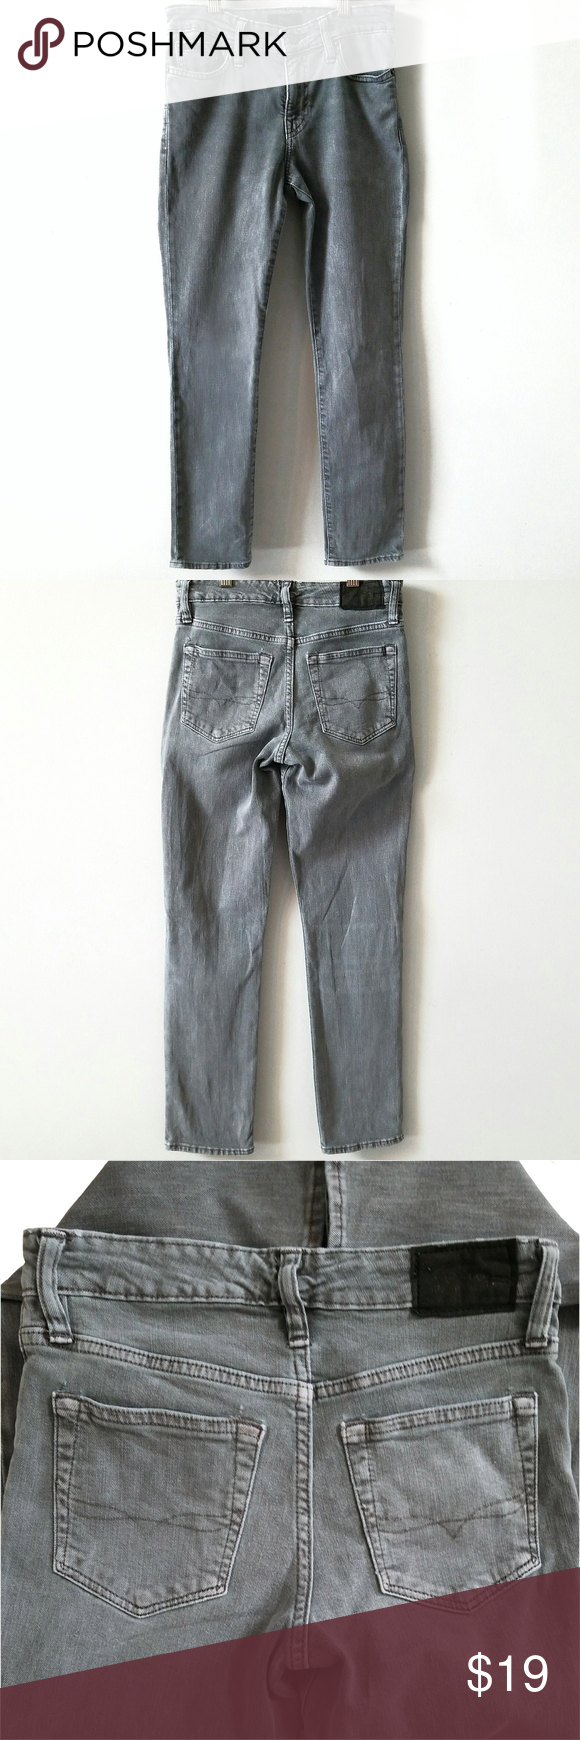 c61bee69 Polo Ralph Lauren Boy's(10) Eldridge Stretch Jeans Polo Ralph Lauren ...